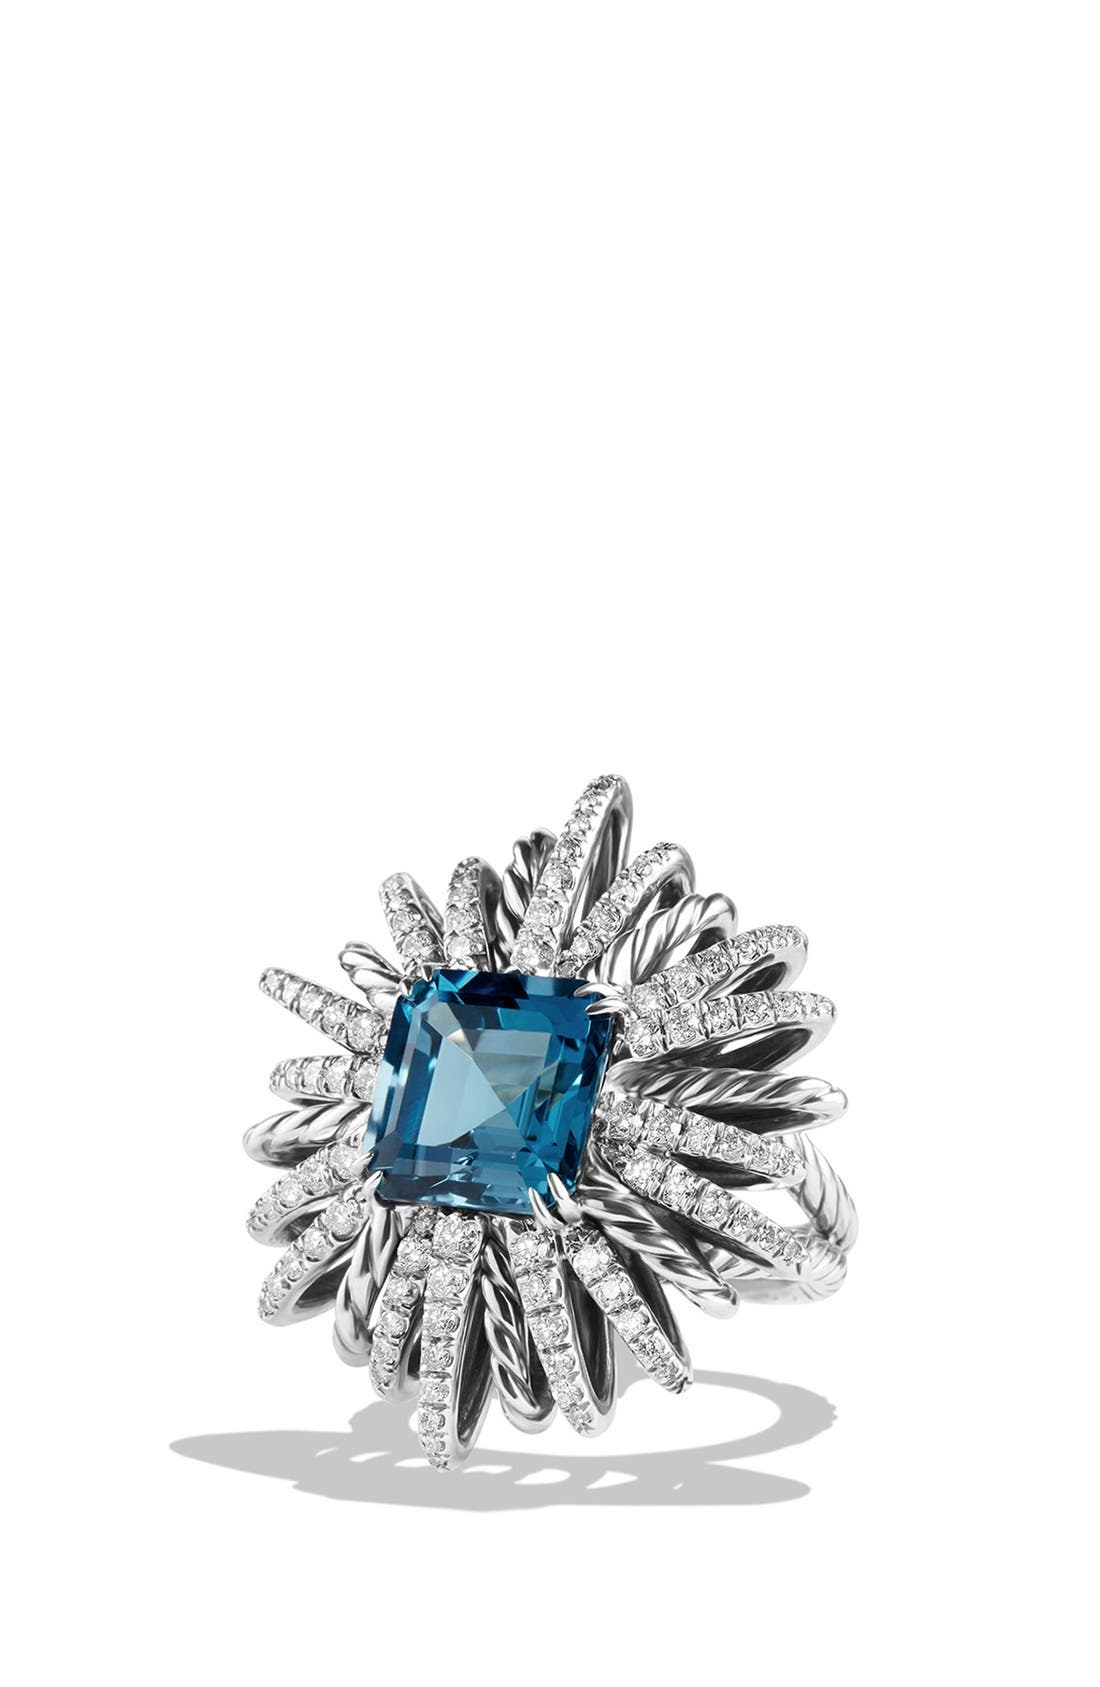 David Yurman 'Starburst' Ring with Semiprecious Stone and Diamonds